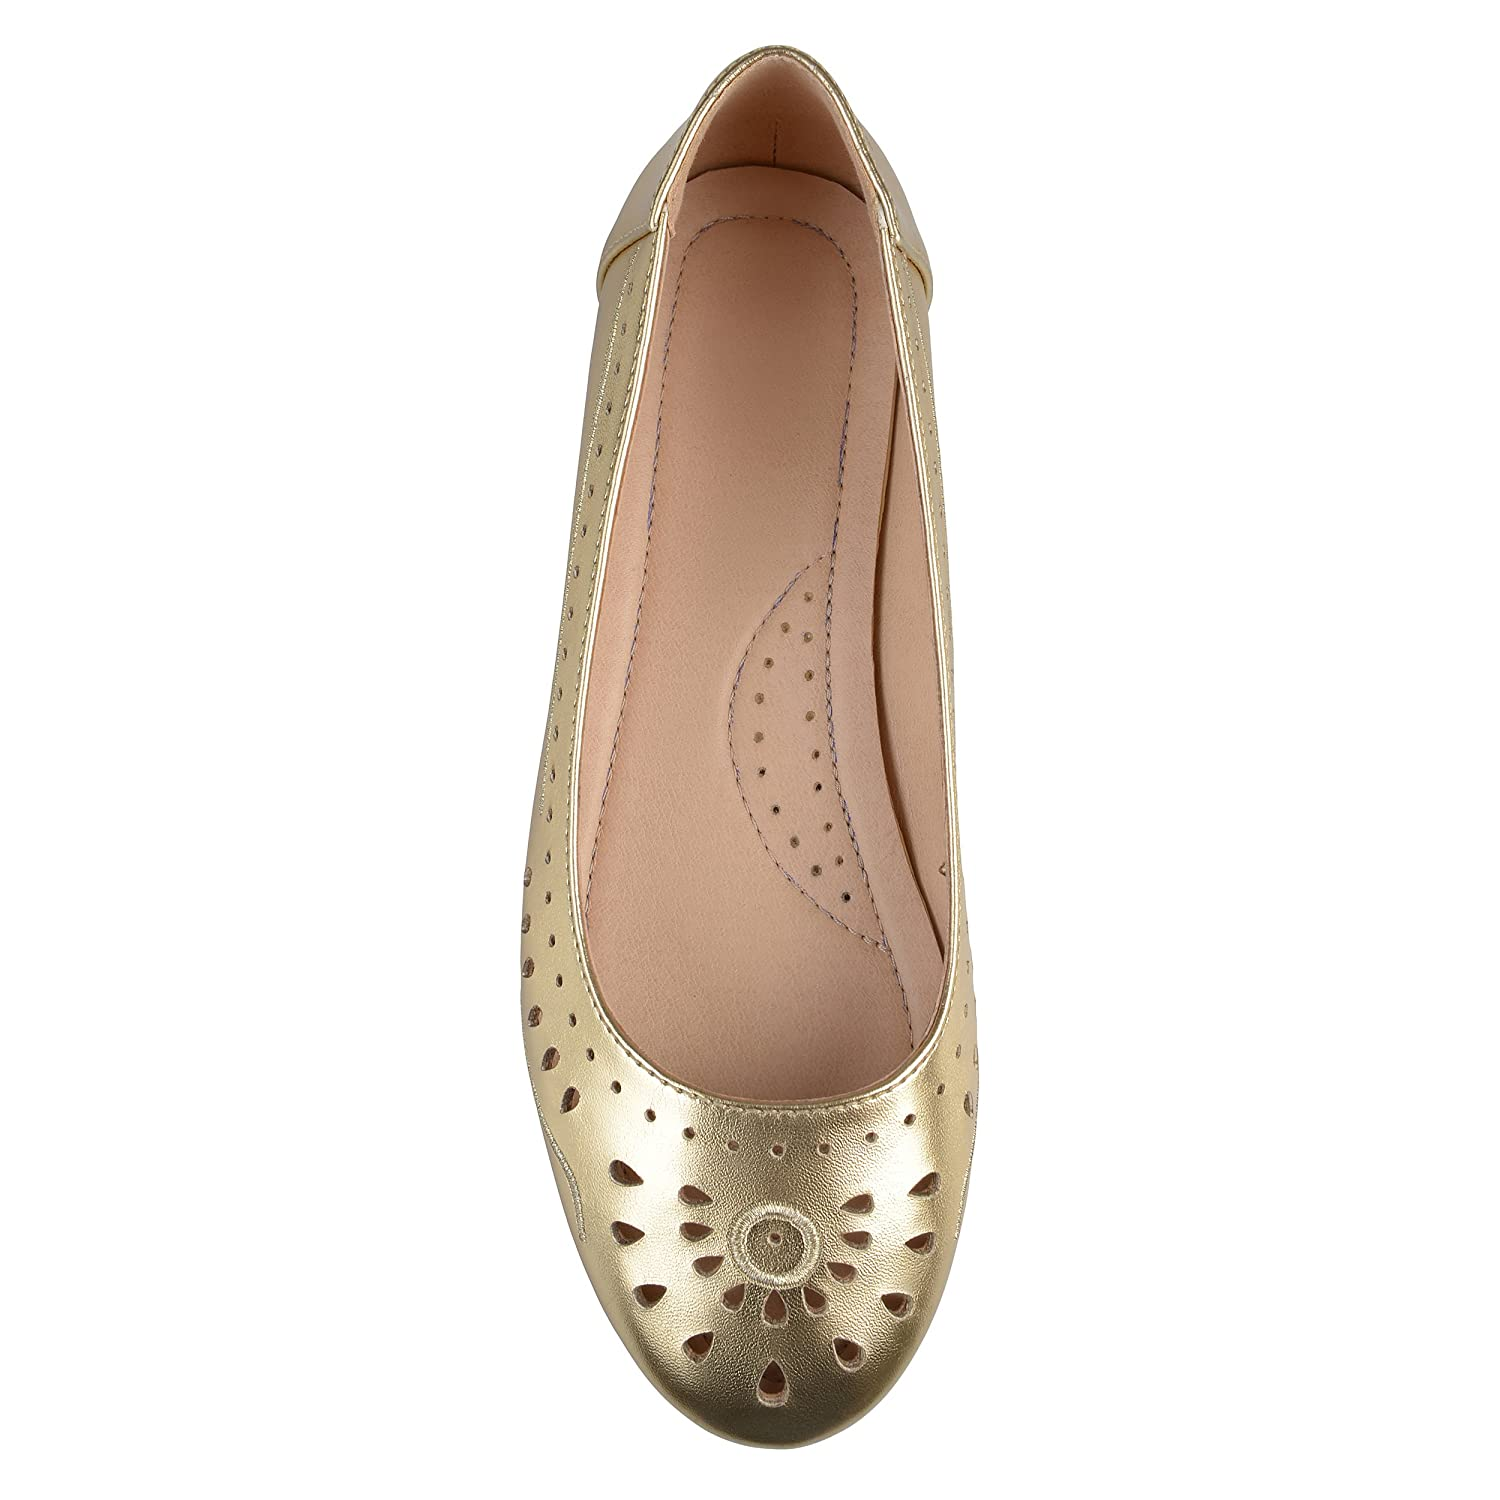 Brinley Co Womens Cyra Faux Leather Laser-Cut Comfort-Sole Embroidered Lightweight Flats B07573SVPF 11 B(M) US|Gold